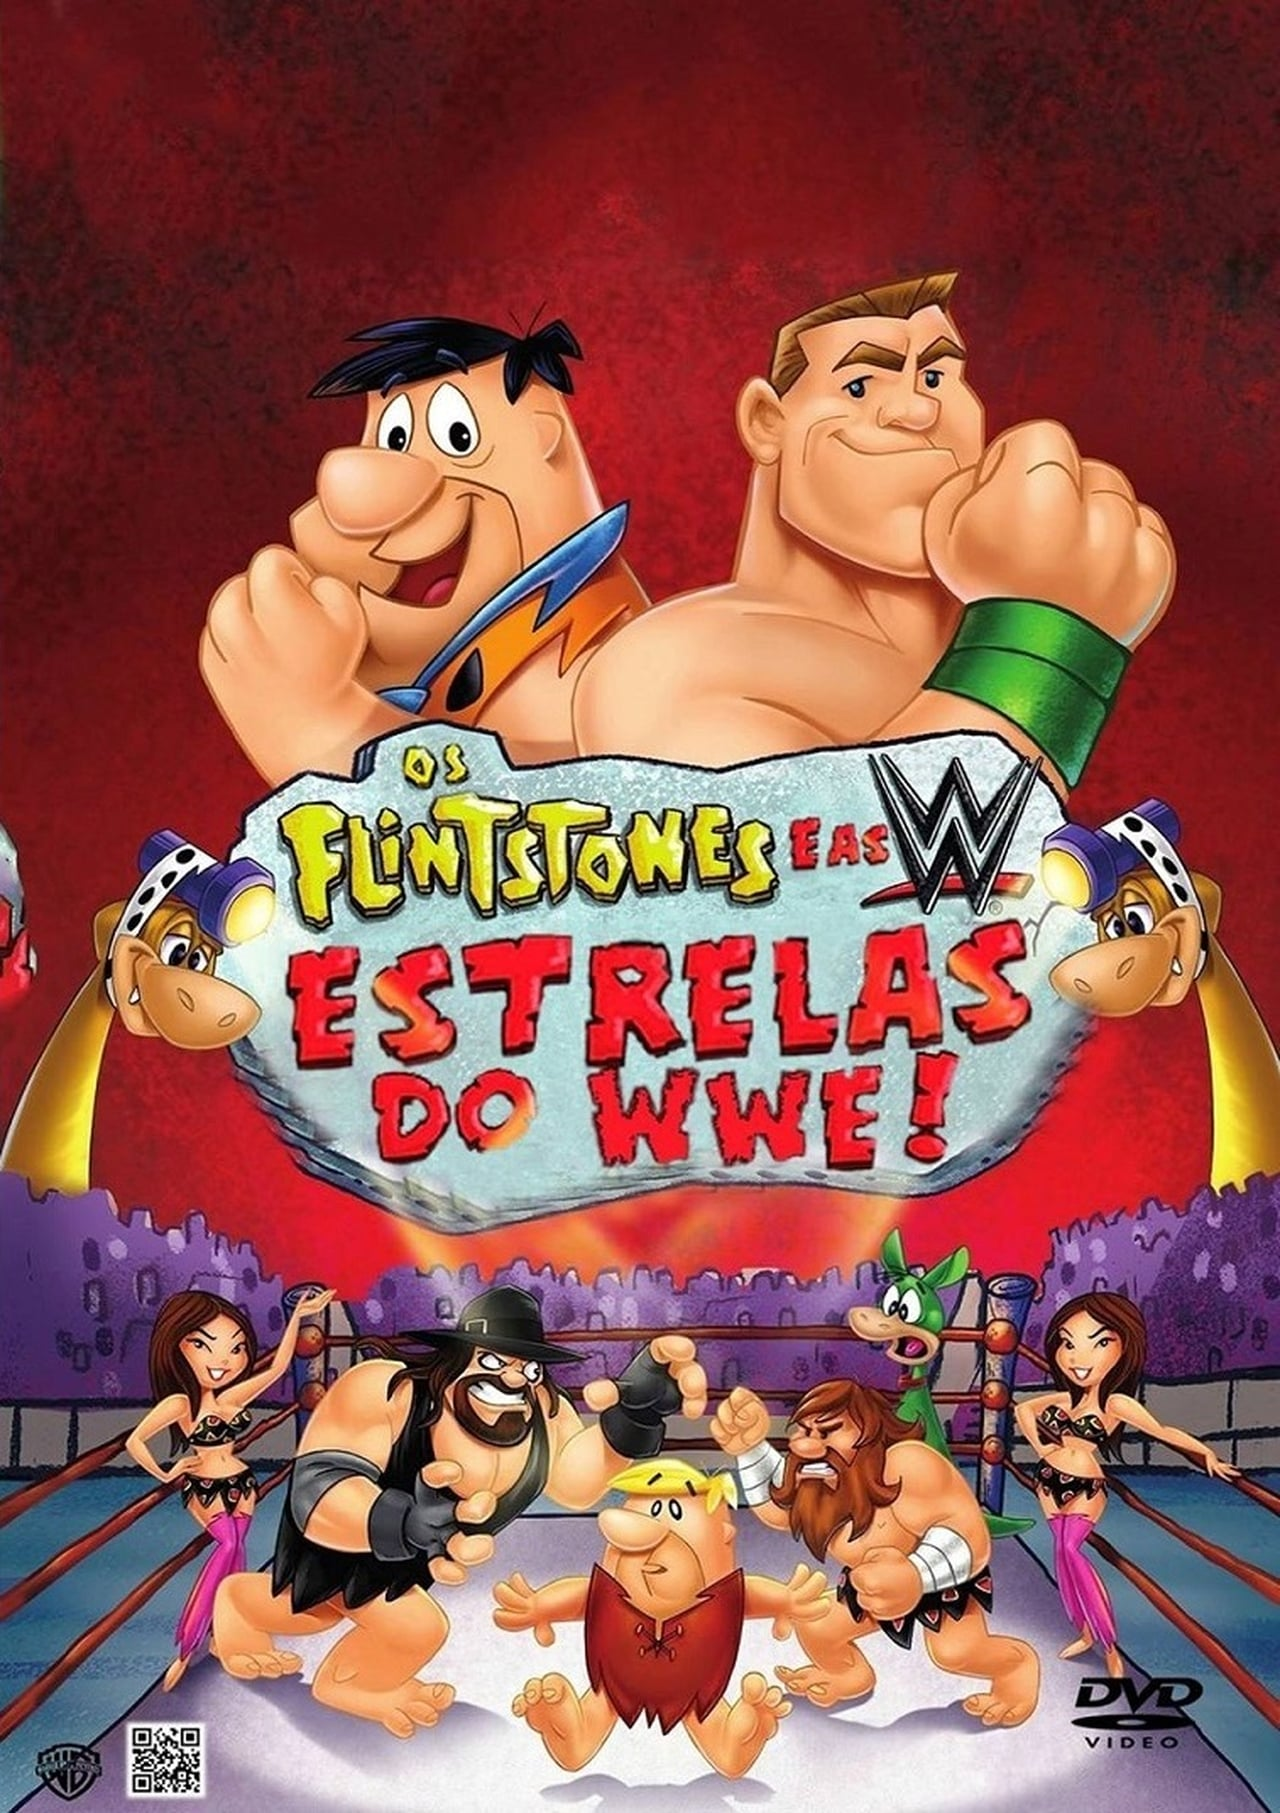 Filme Os Flintstones with regard to legendas os flintstones e as estrelas do wwe (the | vostpt.club